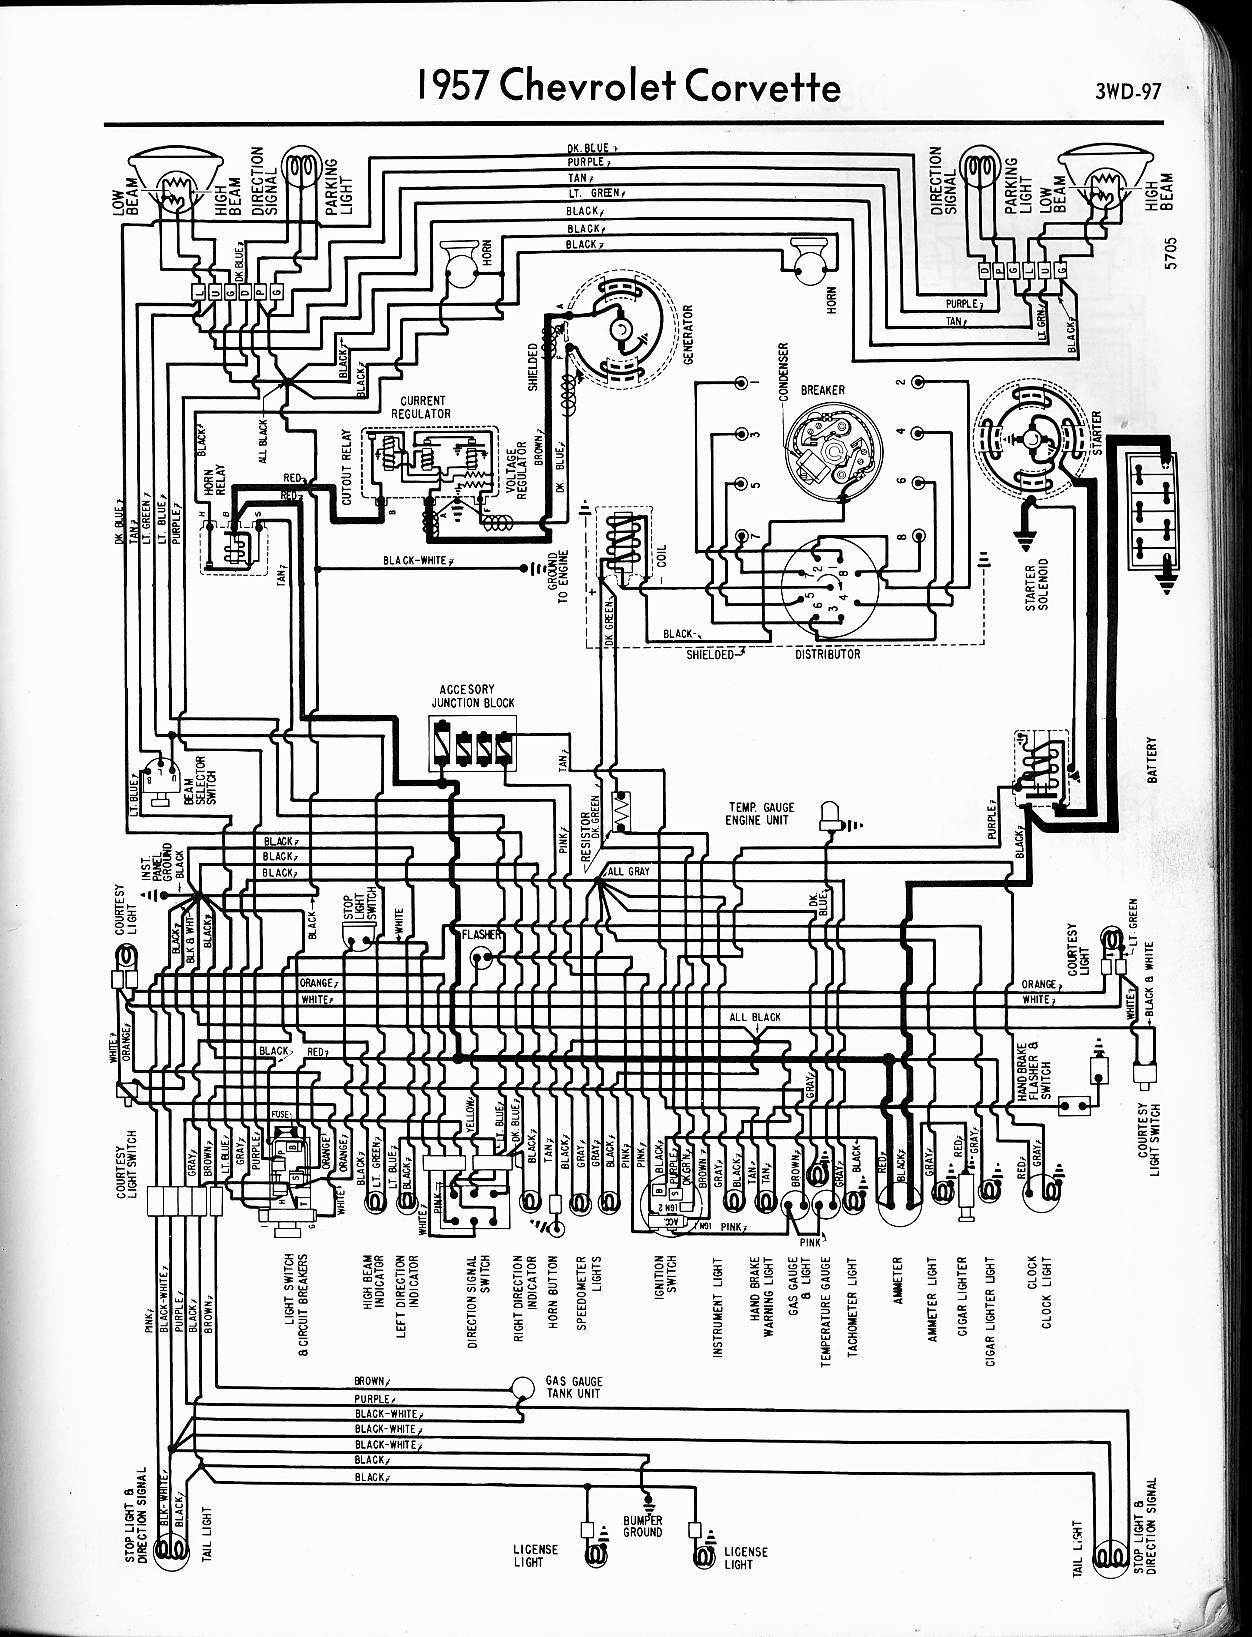 MWireChev57_3WD 097 chevy wiring diagrams chevy radio wiring \u2022 wiring diagrams j Wiring Harness Diagram at reclaimingppi.co